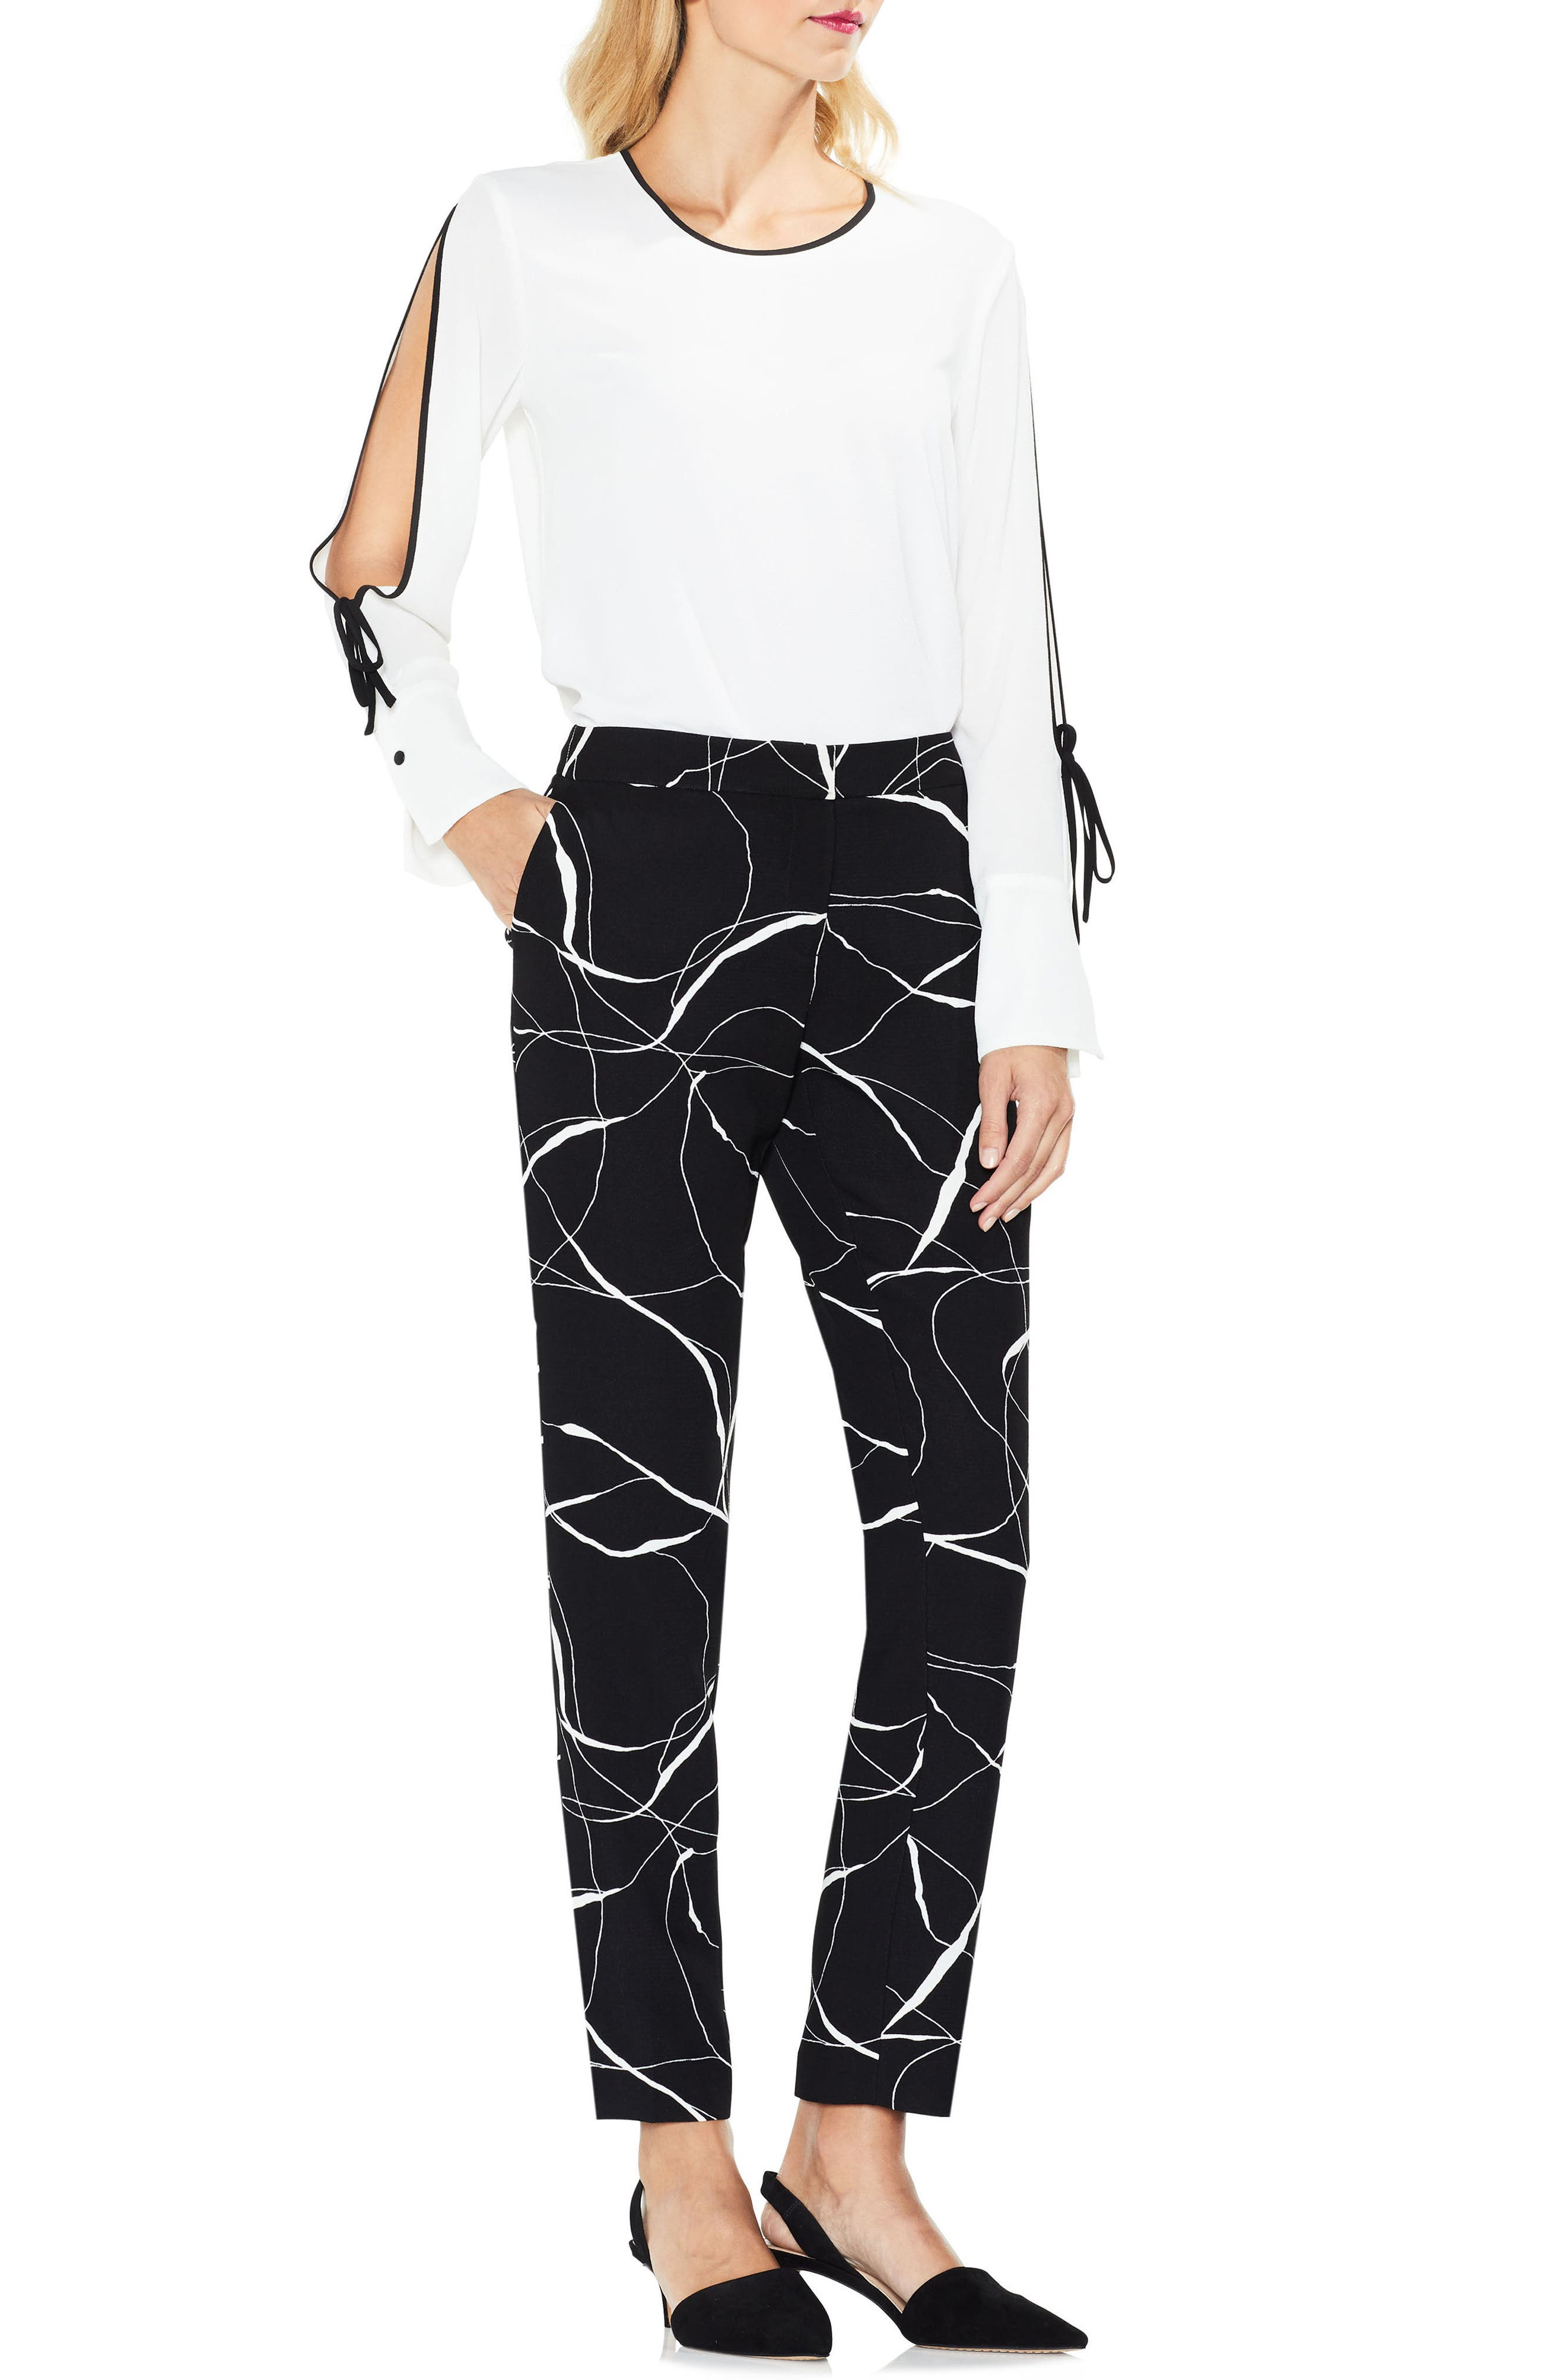 Ink Swirl Print Ankle Pants,                             Main thumbnail 1, color,                             010